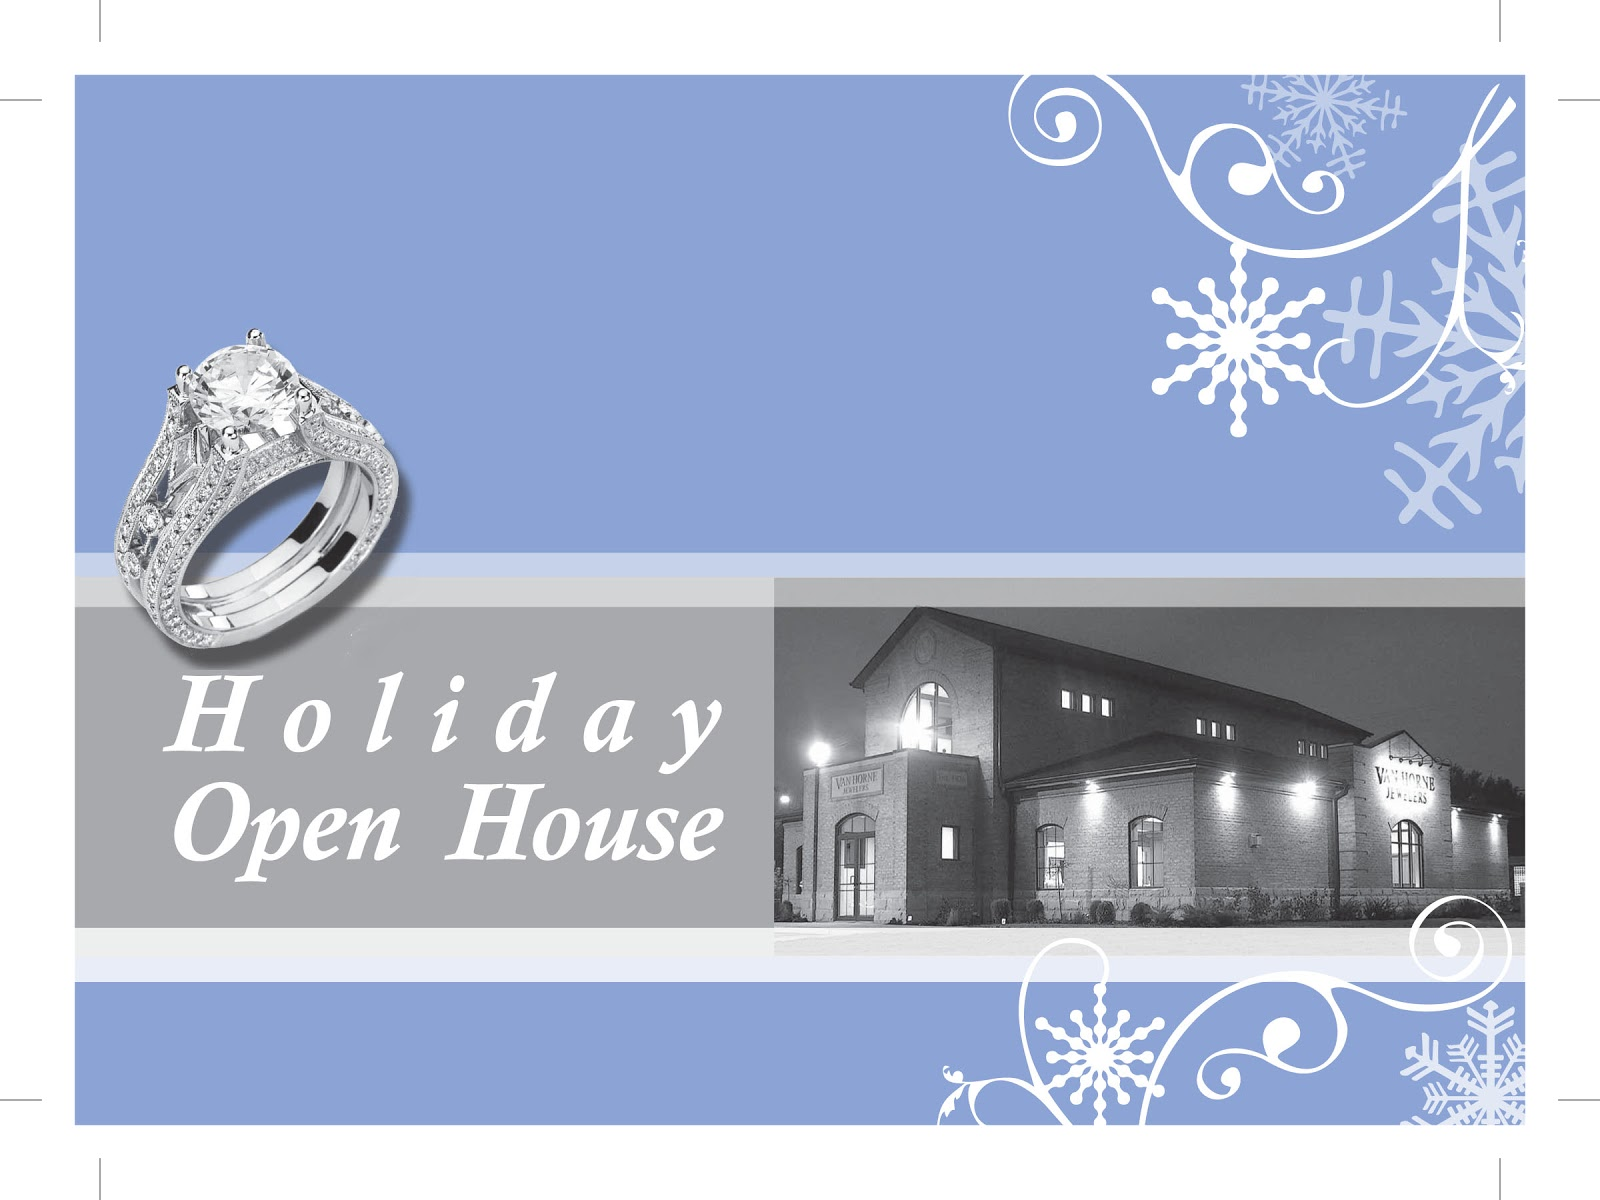 dcc0e303f Also coming up, Van Horne Jewelers will celebrate its 86th anniversary in  2012 by hosting its annual Open House on Friday, November 30, from 10:00 am  - 8:00 ...